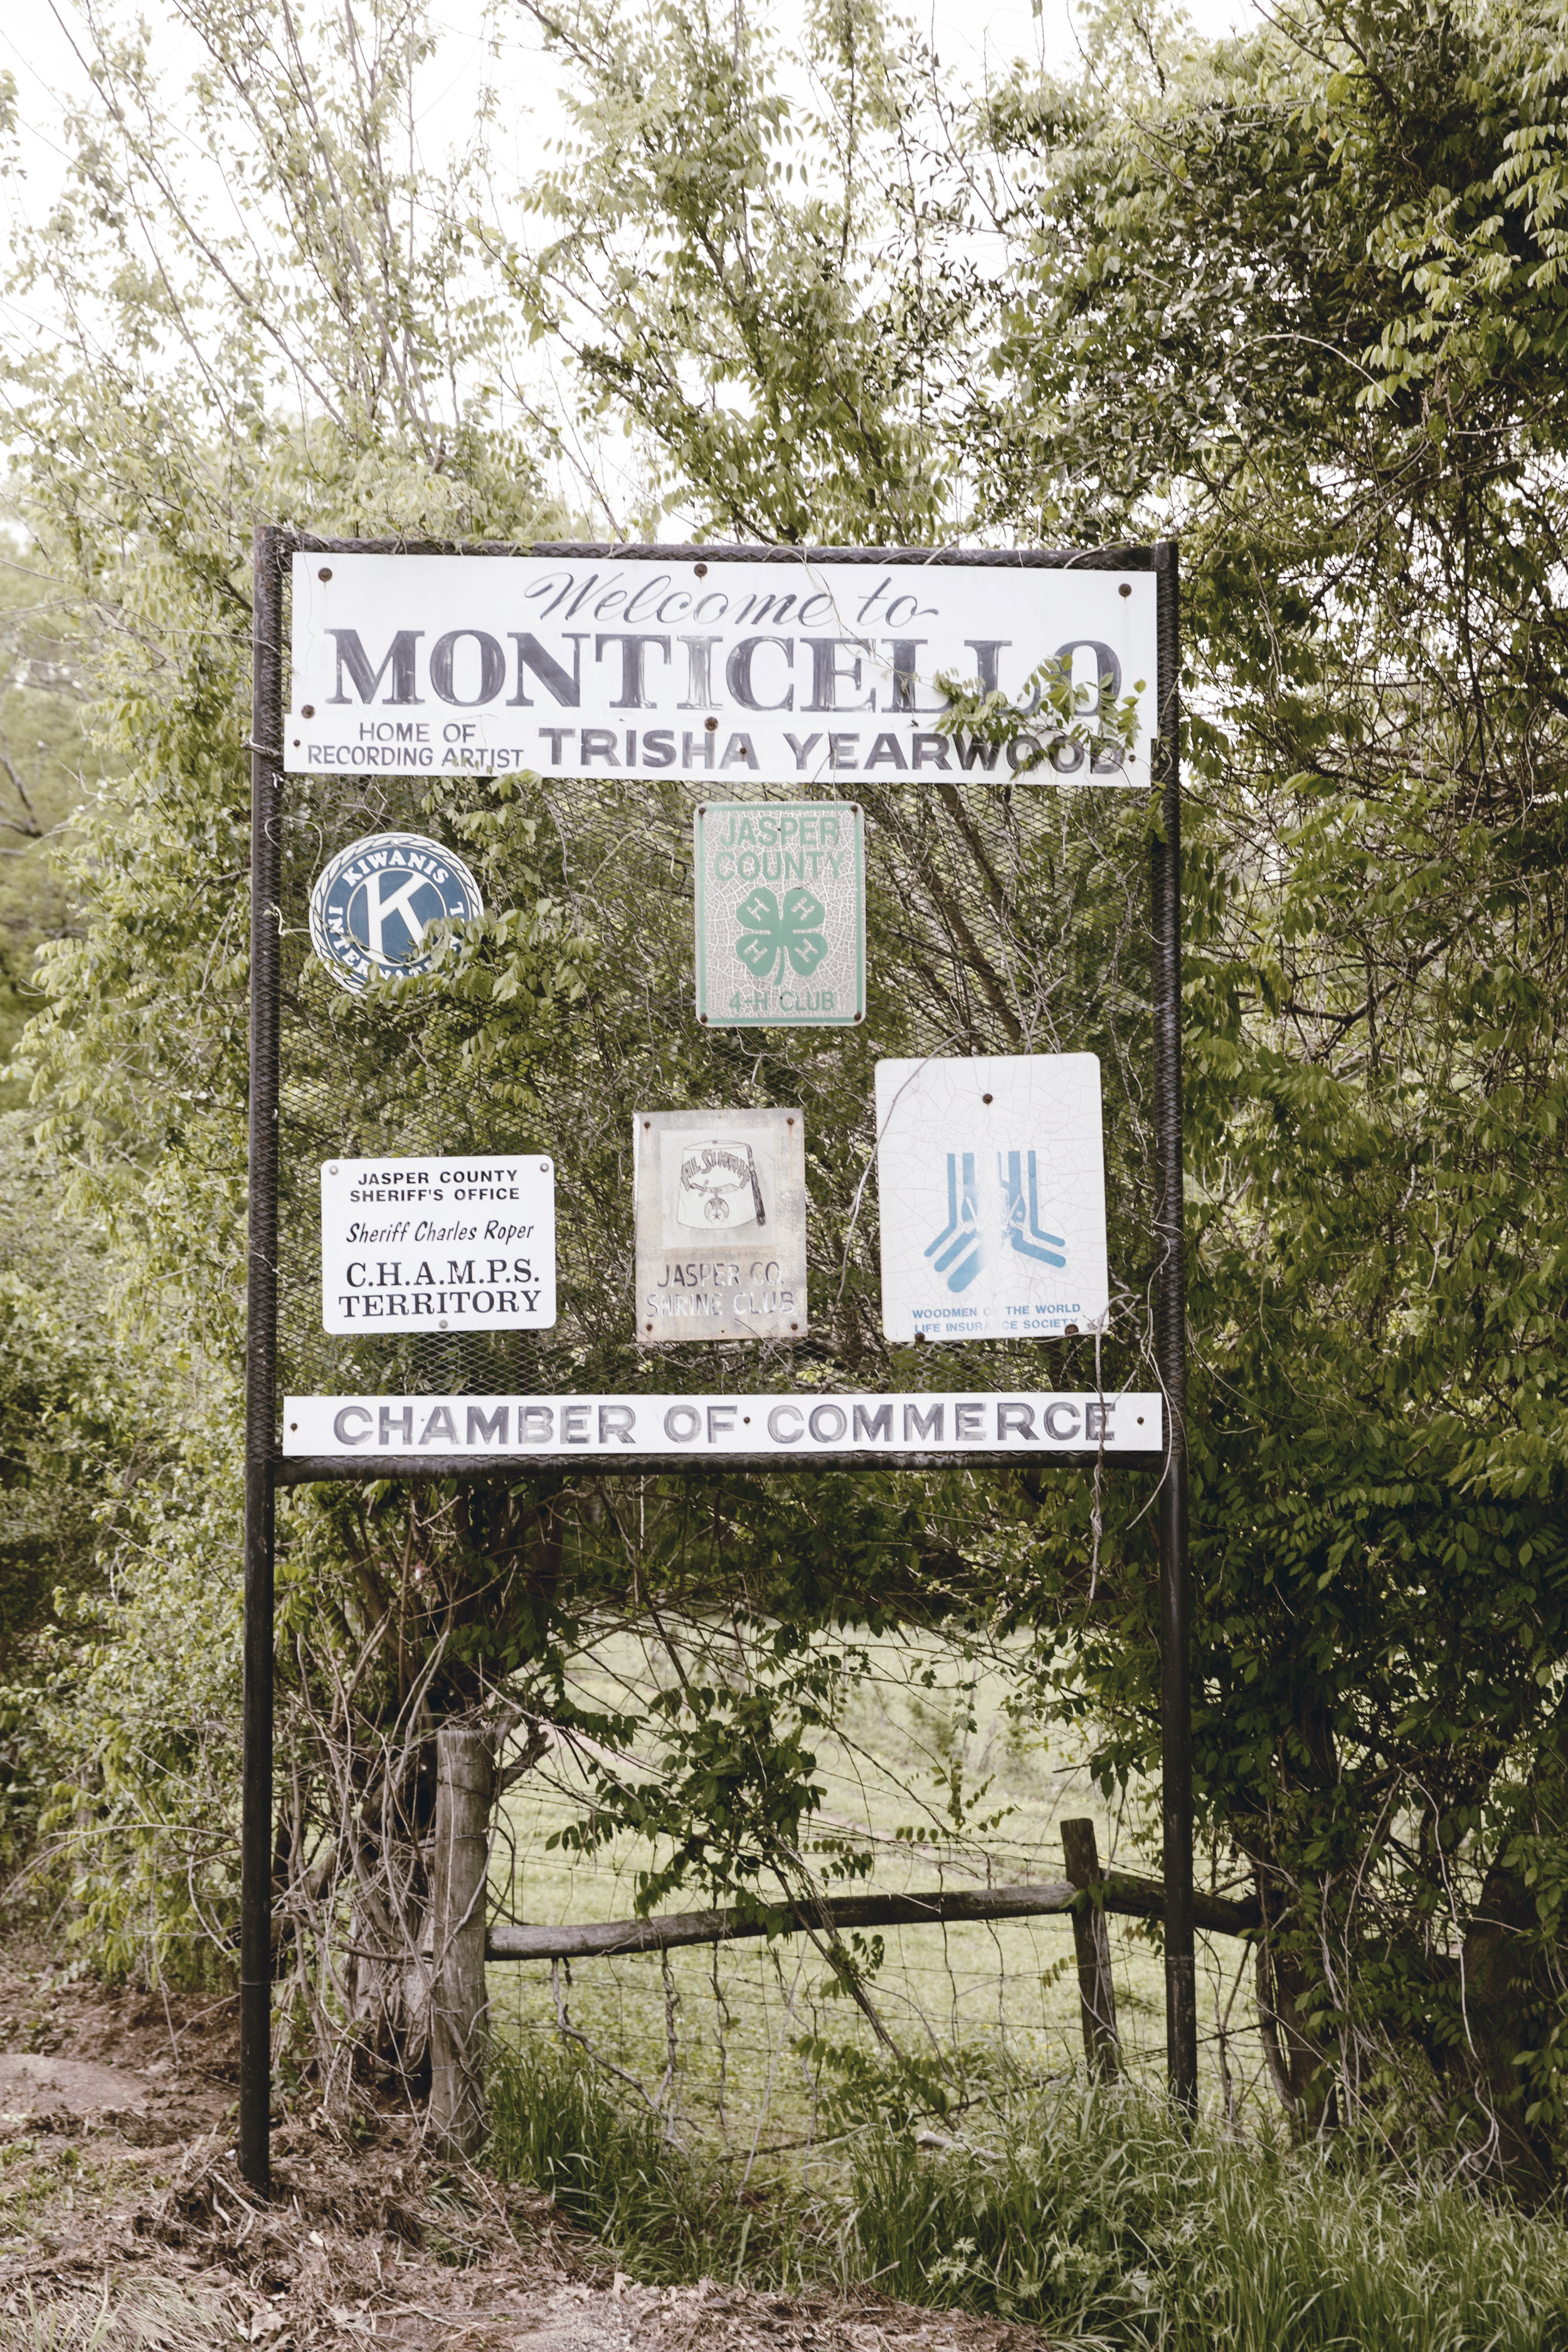 Monticello Georgia city limits welcome sign / home of Trisha Yearwood / heirloomed